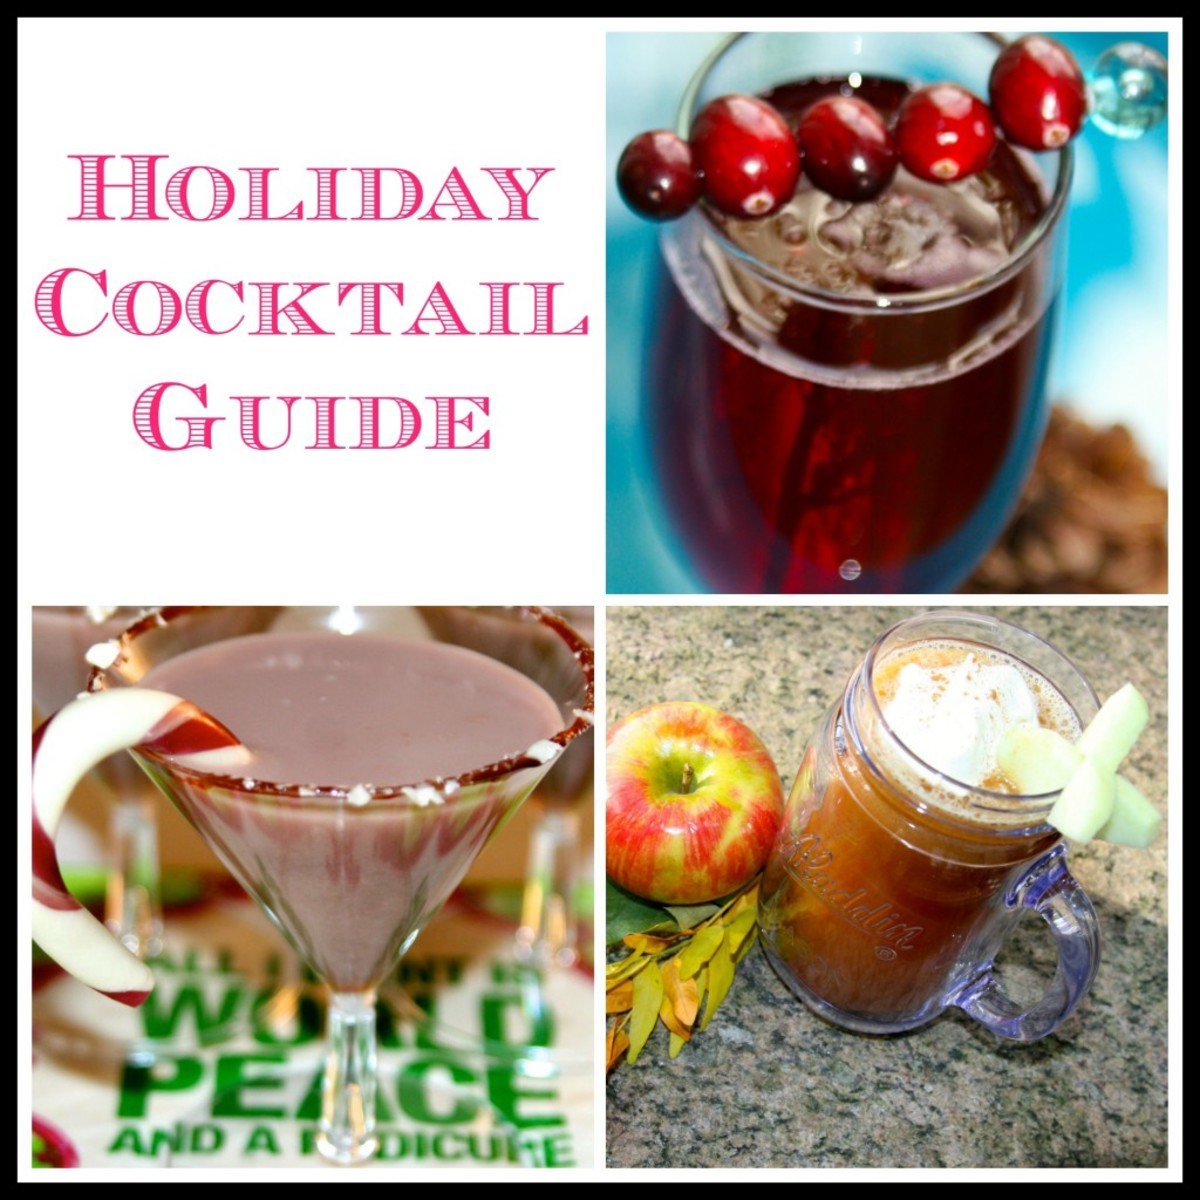 Holiday-Cocktail-guide-1024x1024